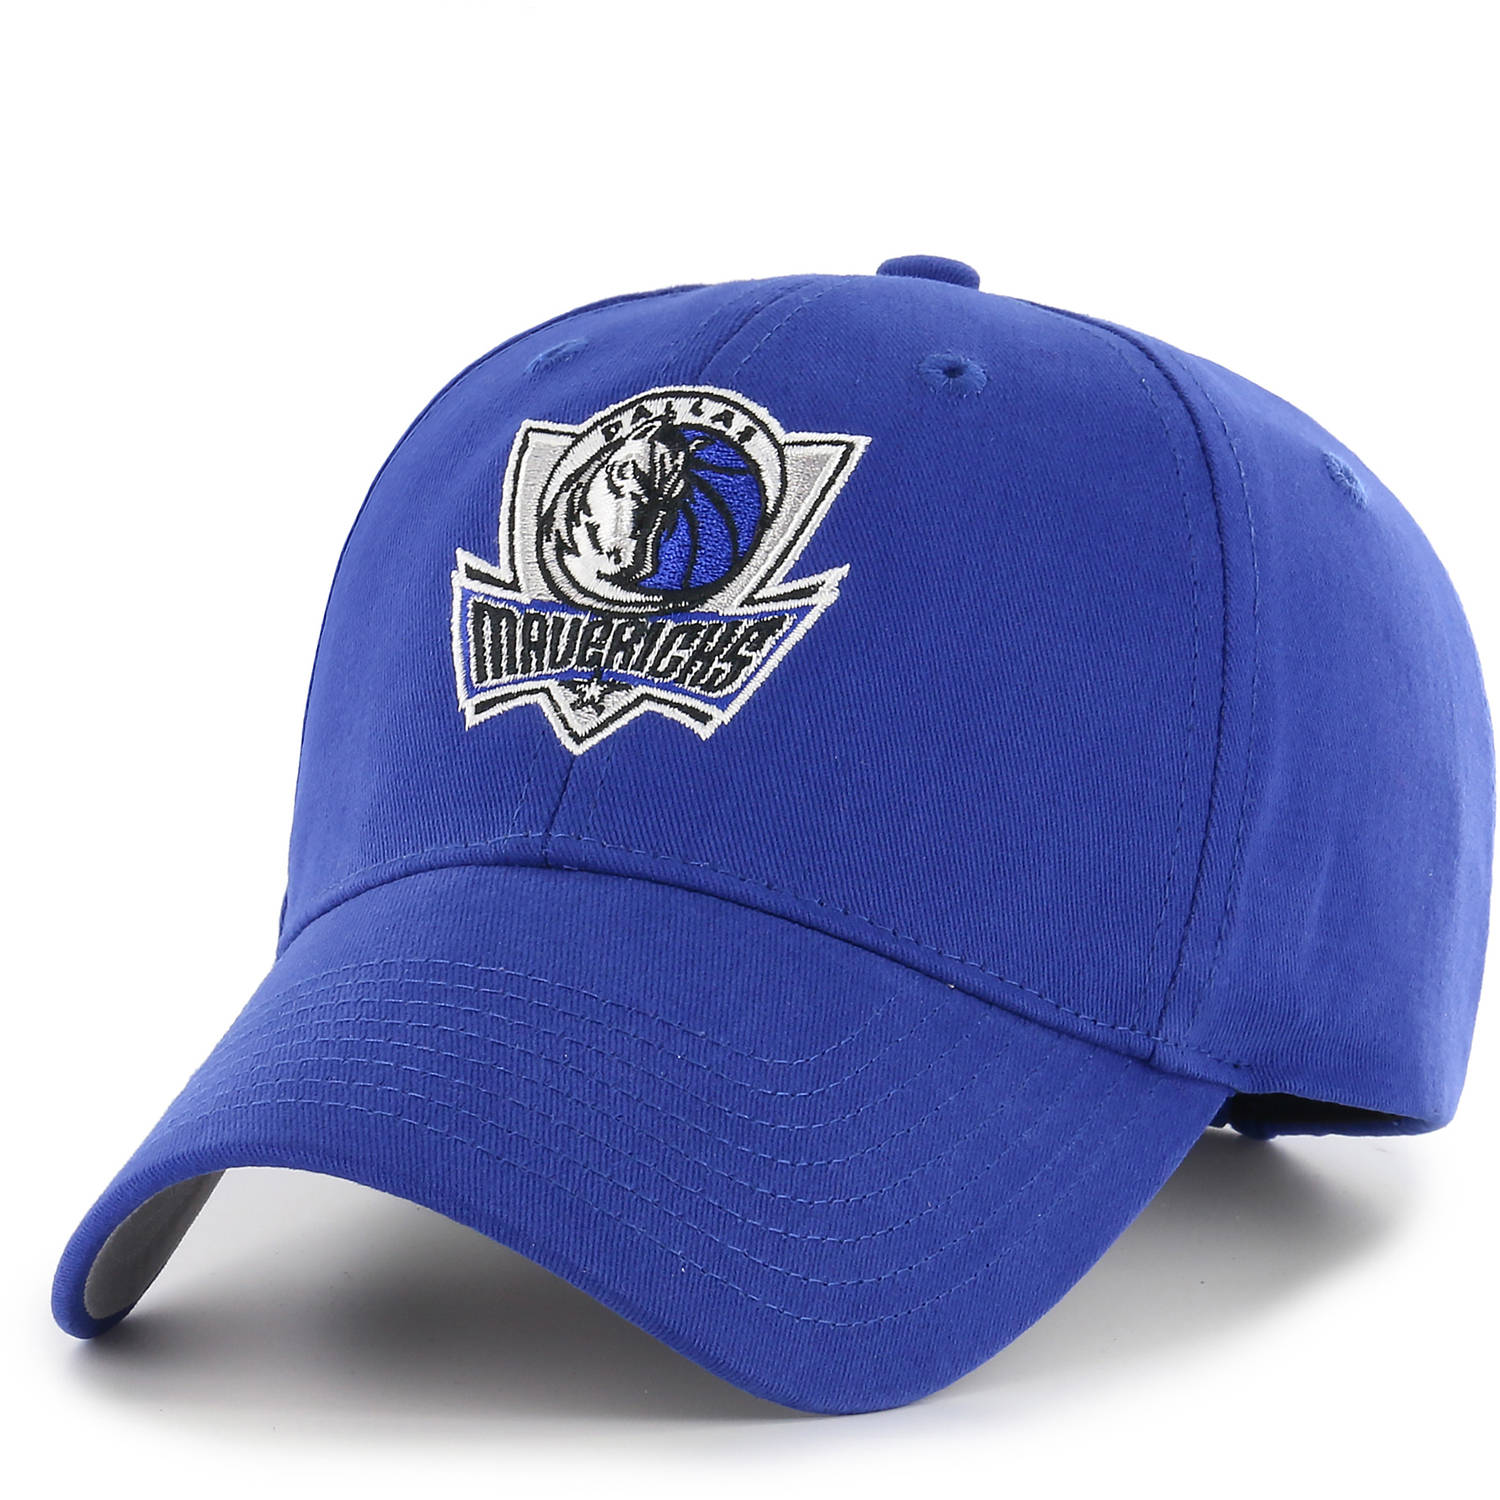 NBA Dallas Mavericks Basic Cap/Hat - Fan Favorite